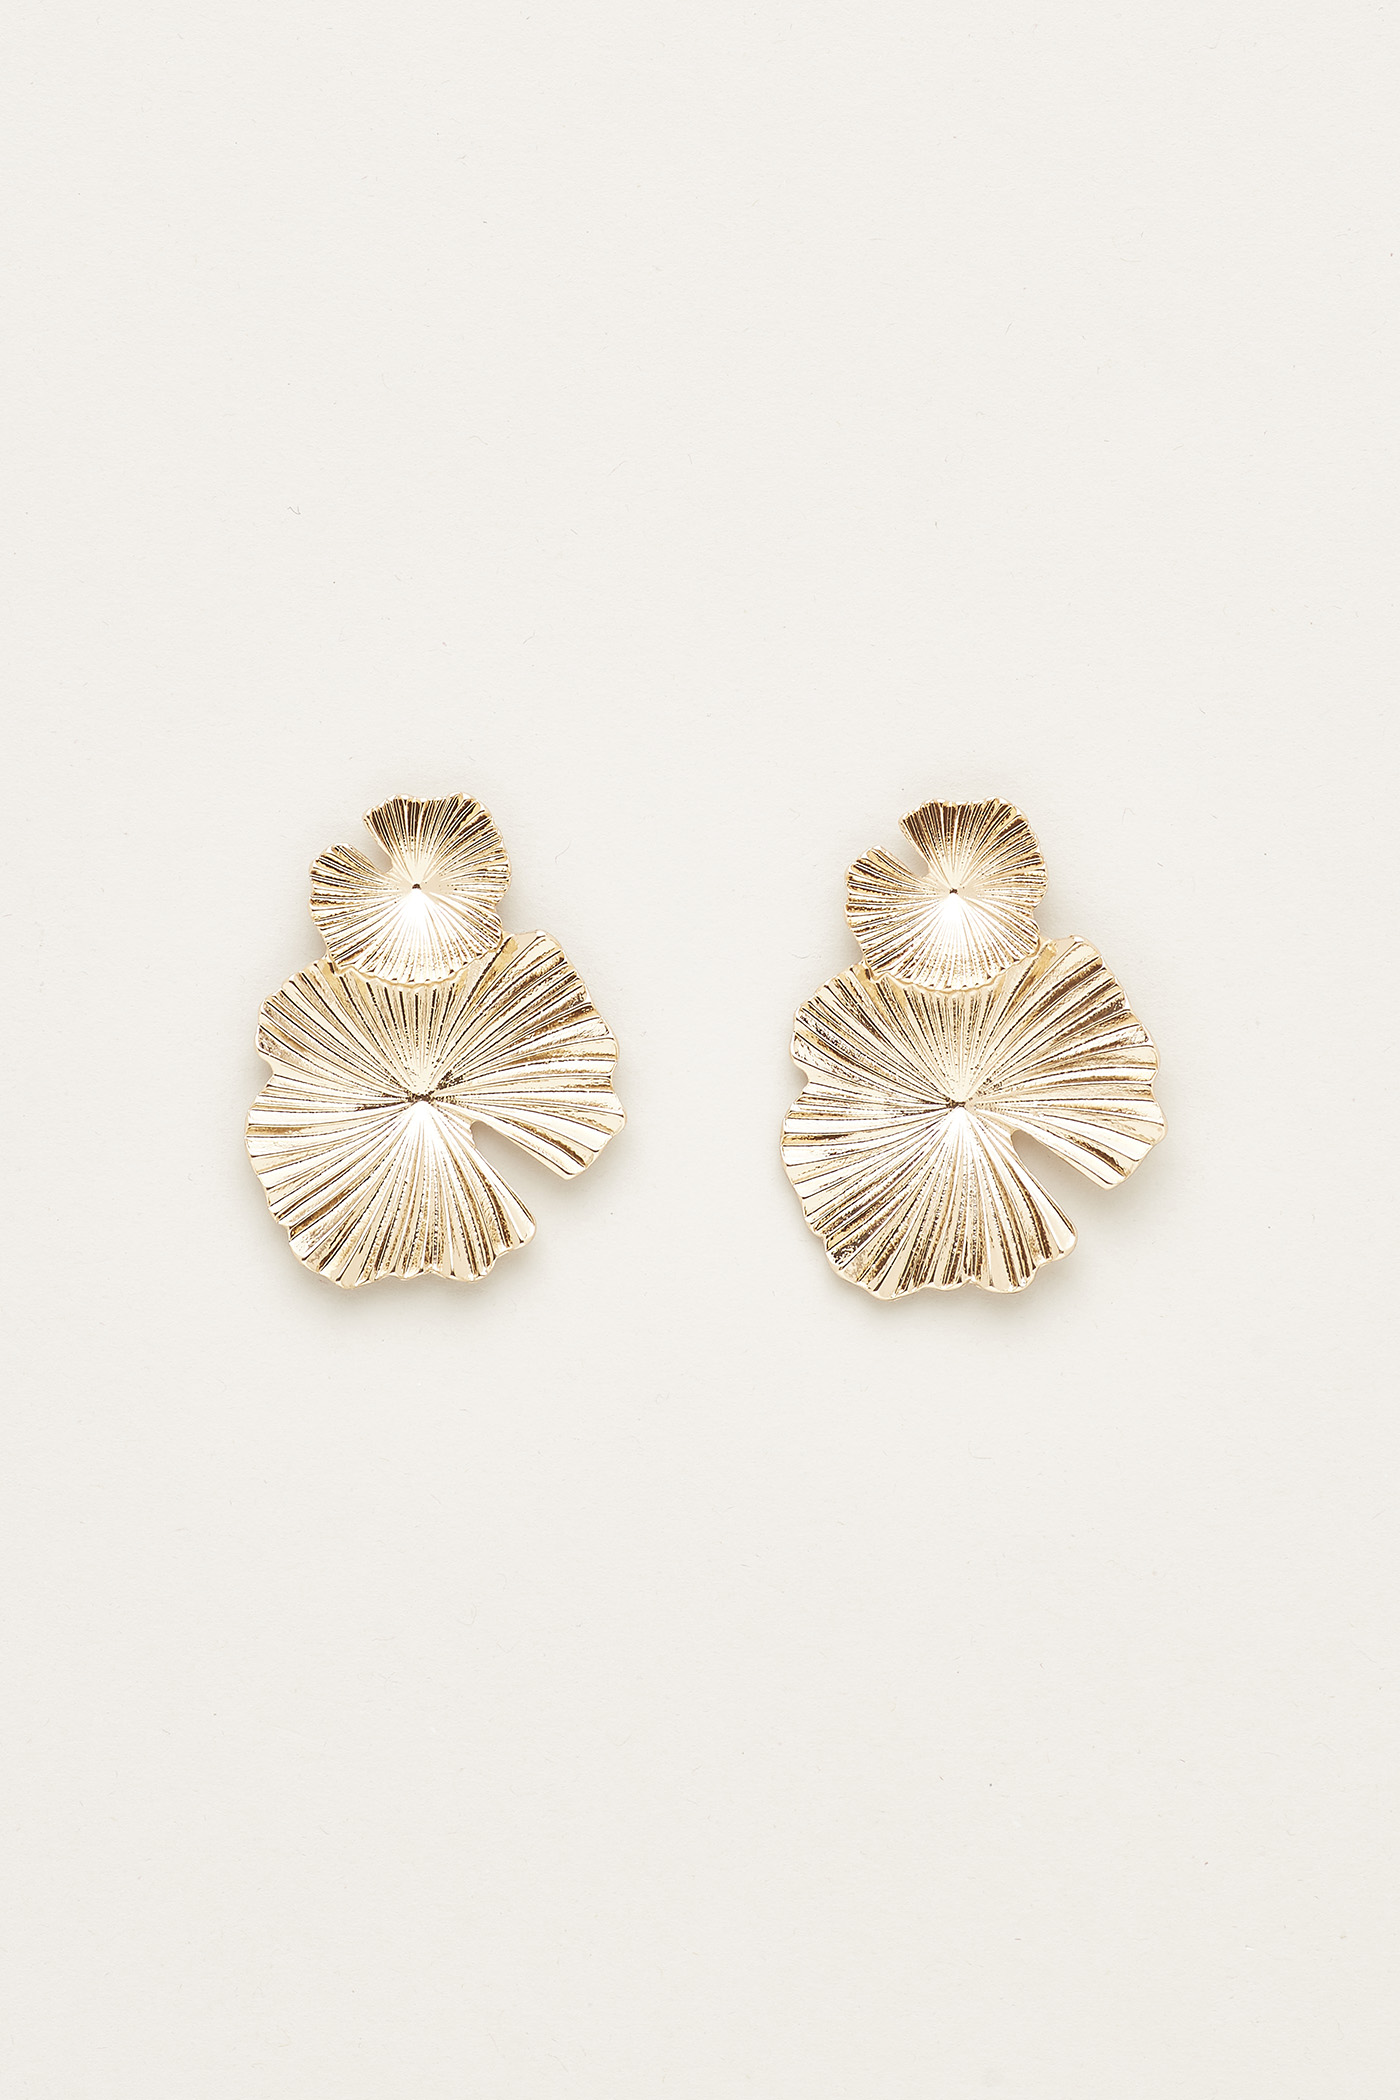 Hebe Textured Earrings